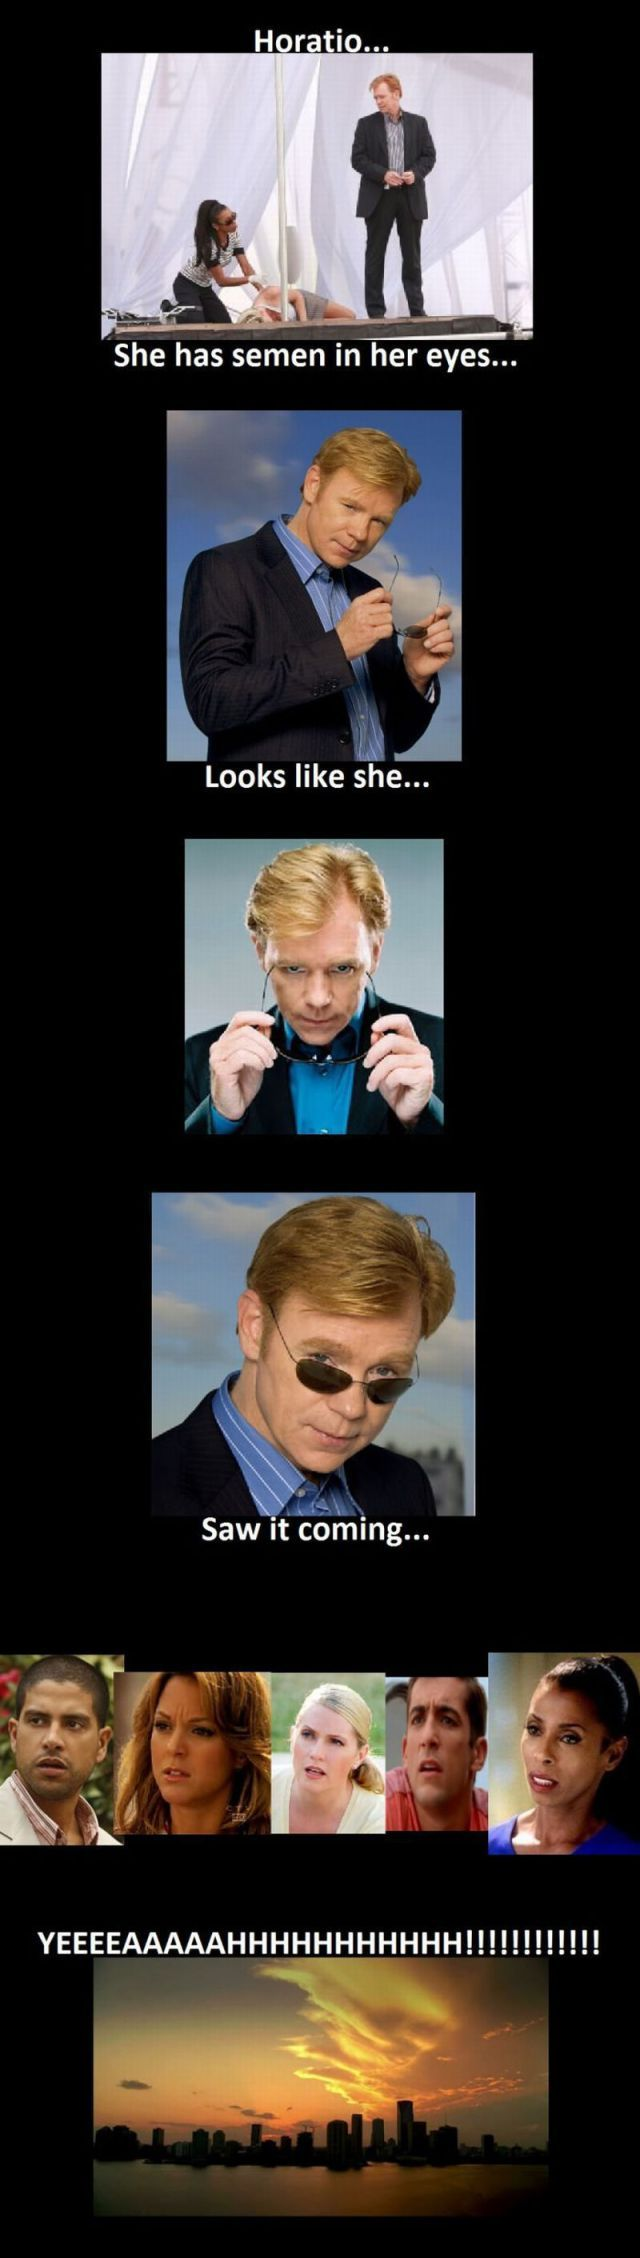 lolz my family ALWAYS makes fun of horatio's Glasses-move-and-i-never-look-at-who-im-talking-to bit.